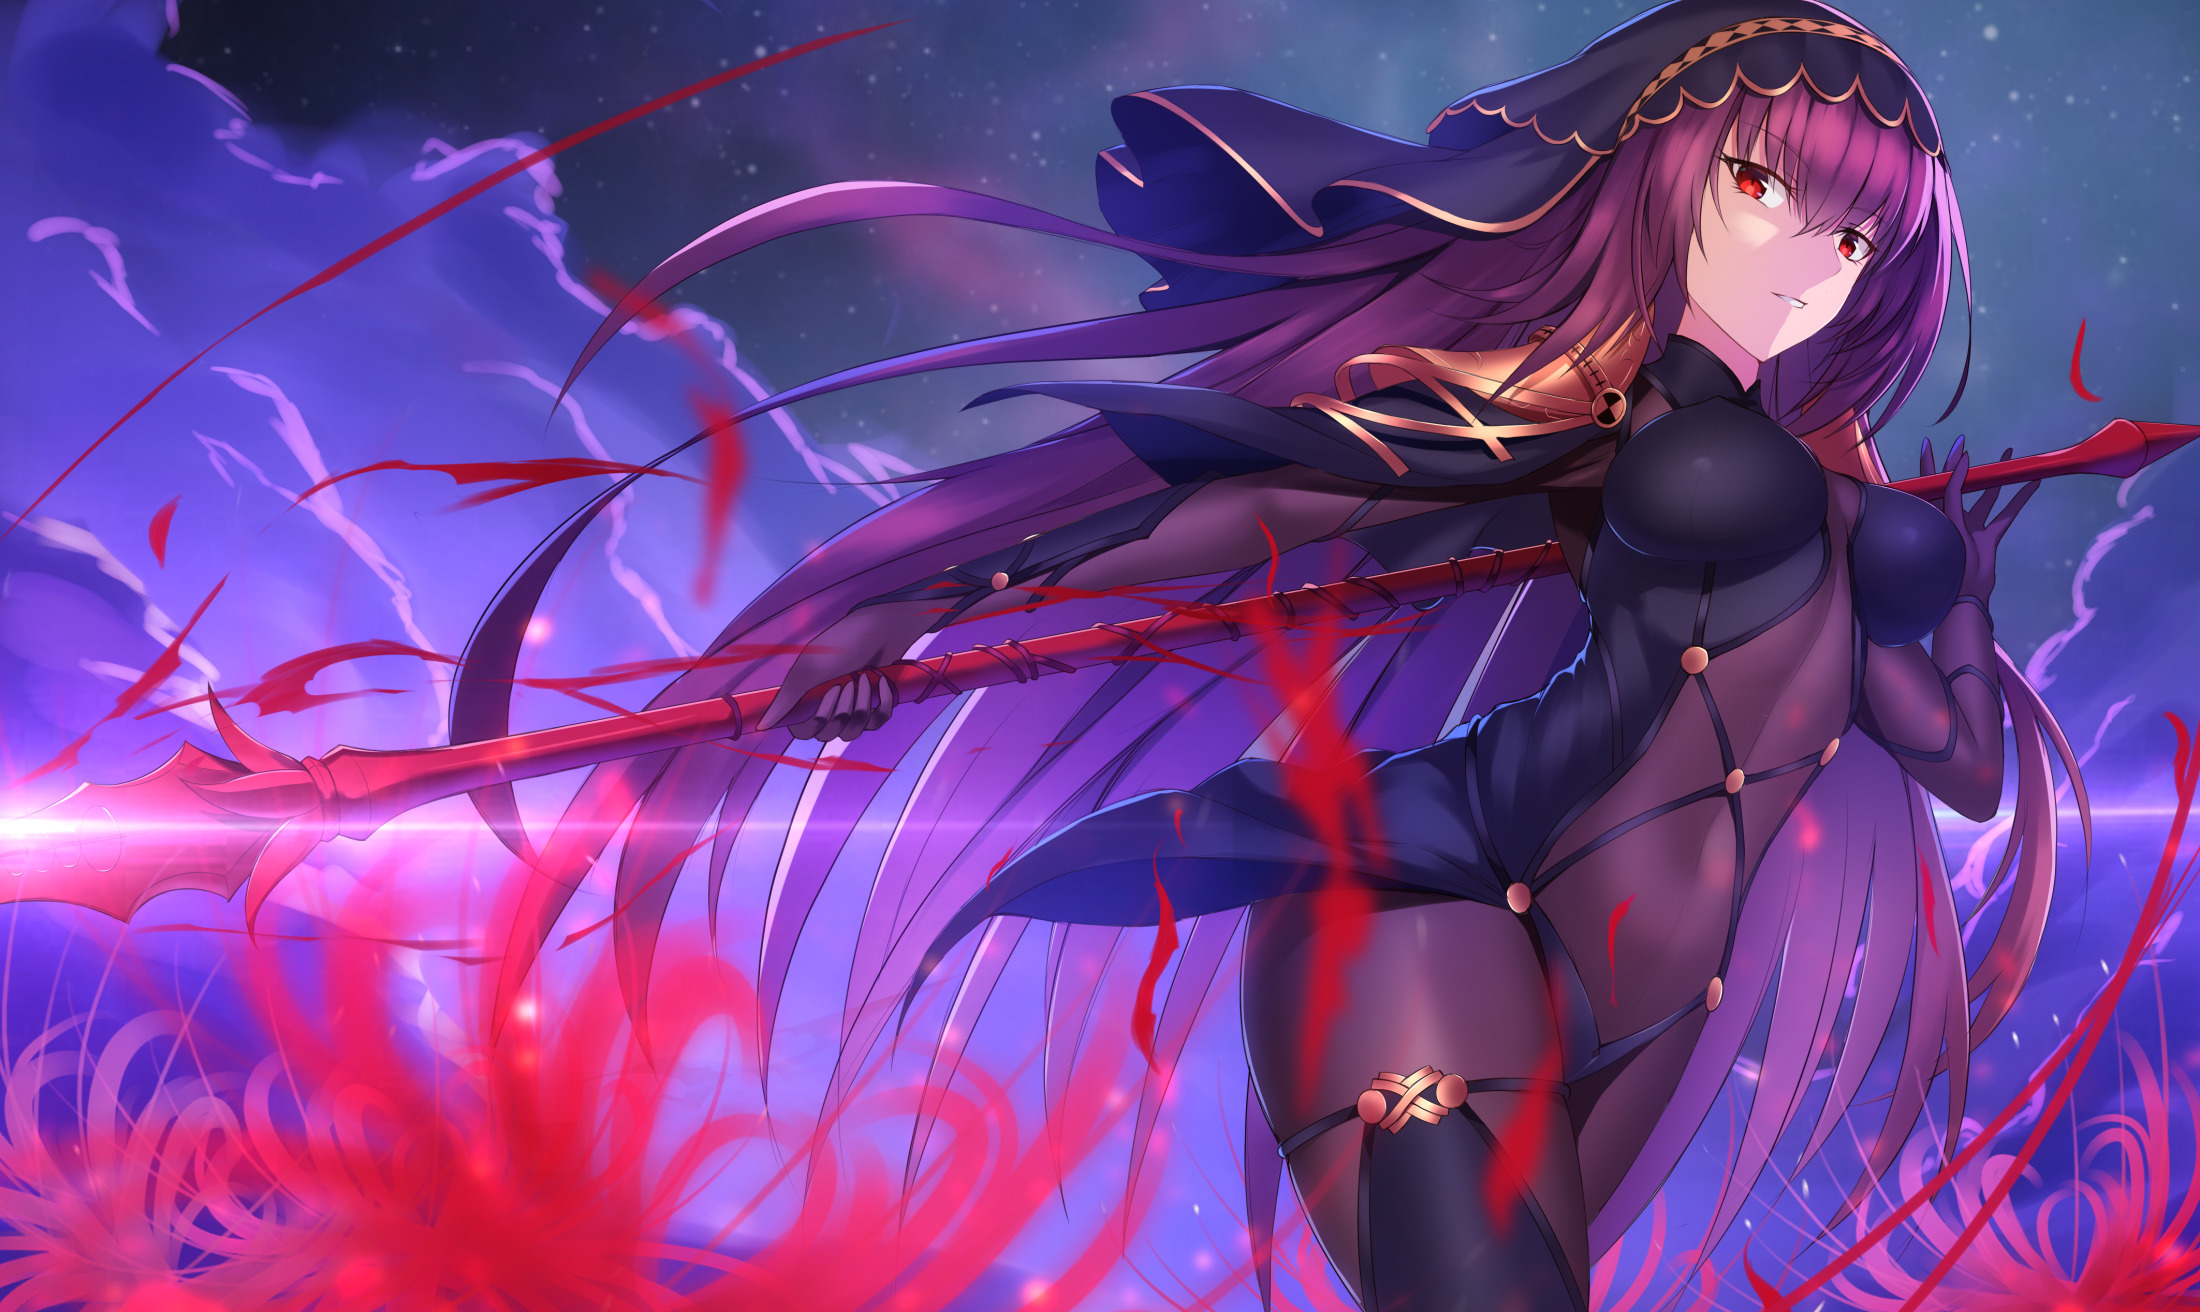 Image: Girl, scathach, spear, weapon, figure, hair, look